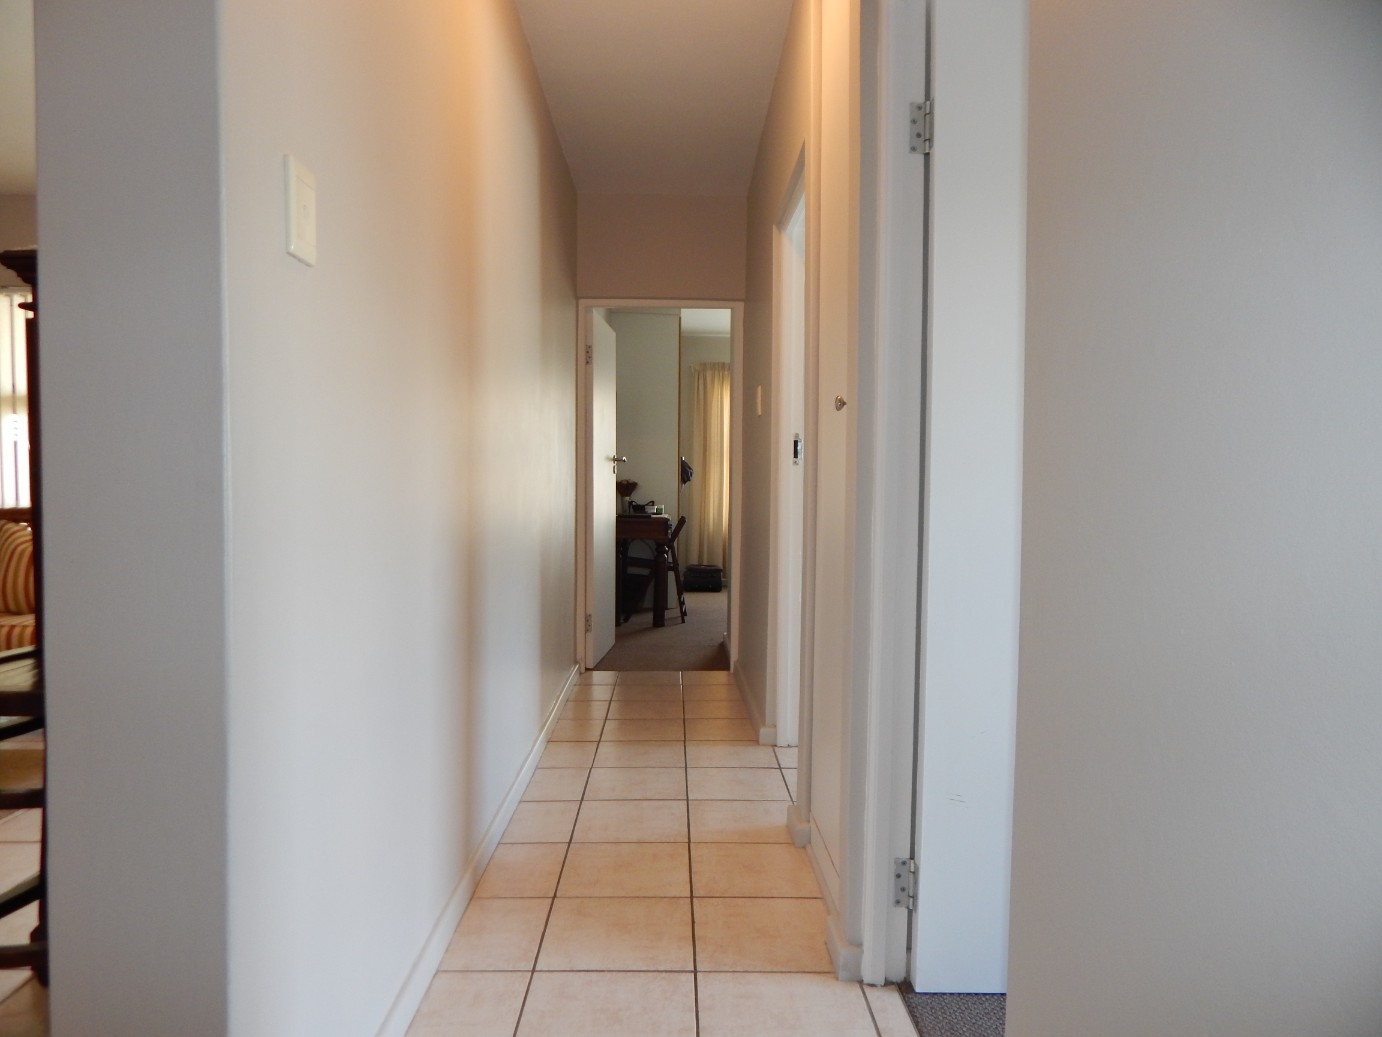 3 Bedroom Apartment for sale in Diaz Beach ENT0080239 : photo#22